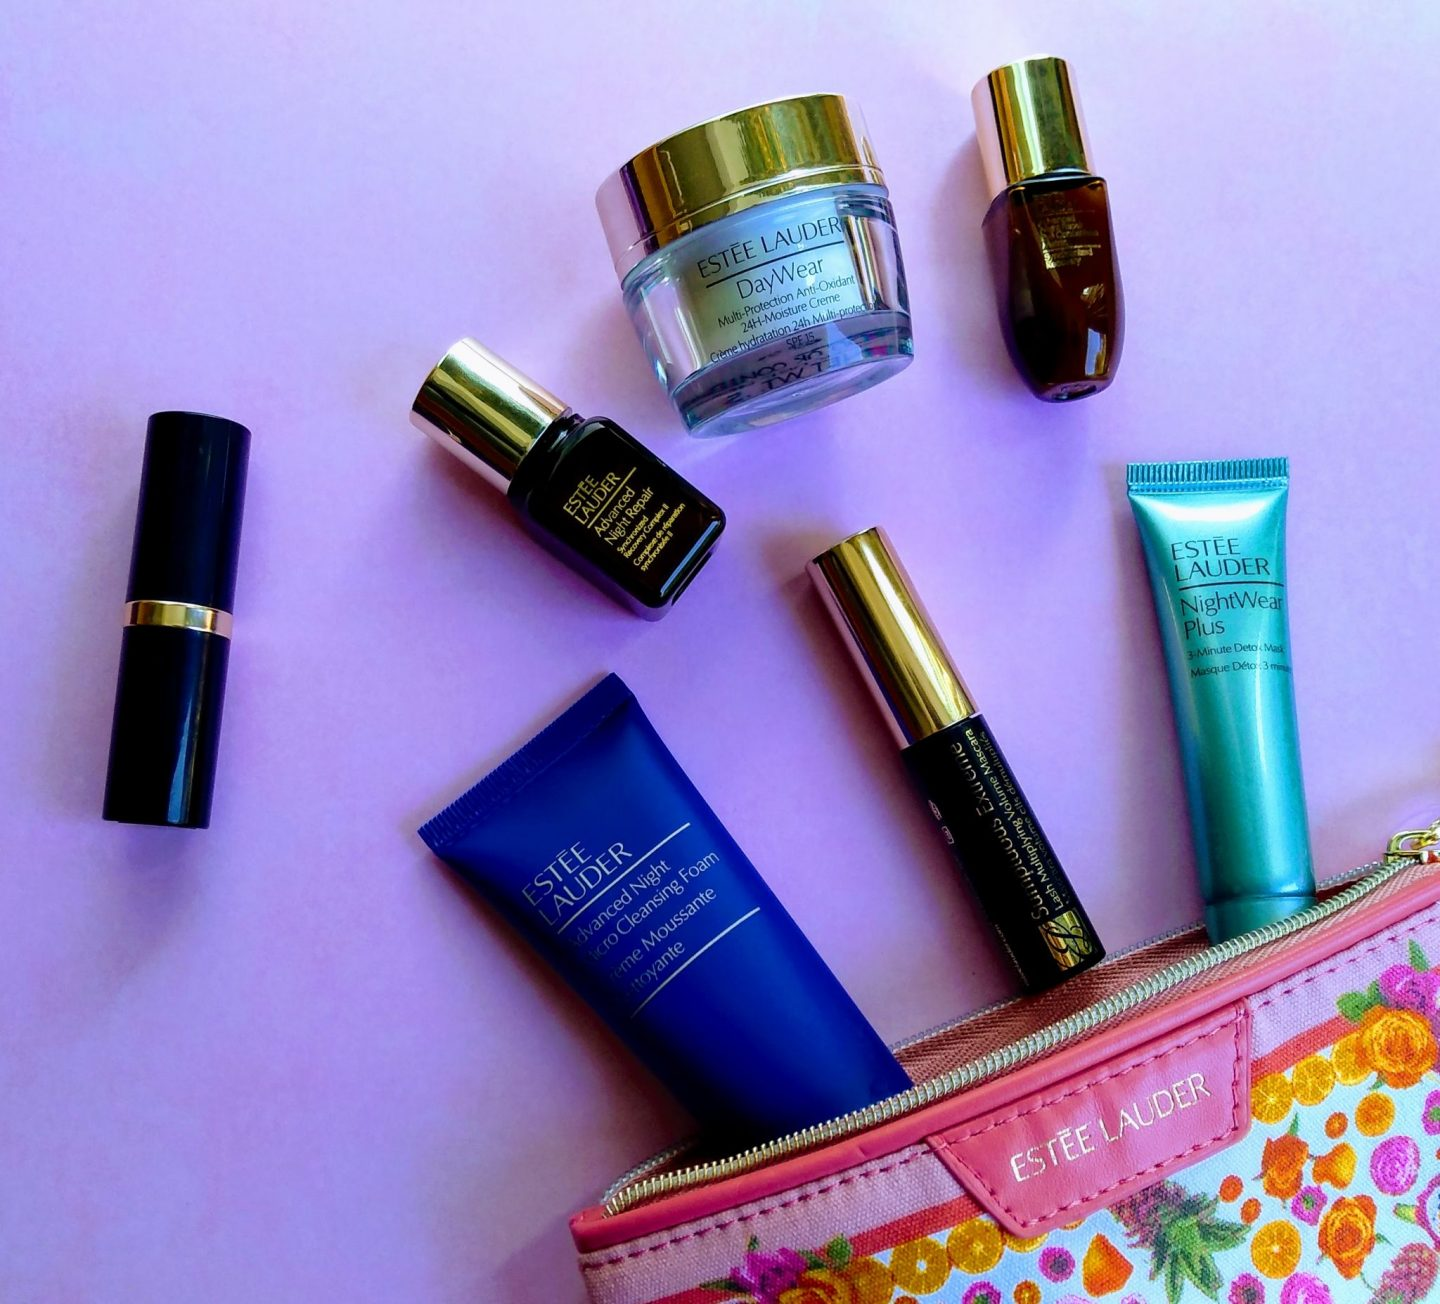 Estee Lauder Spring 2019 Gift Review